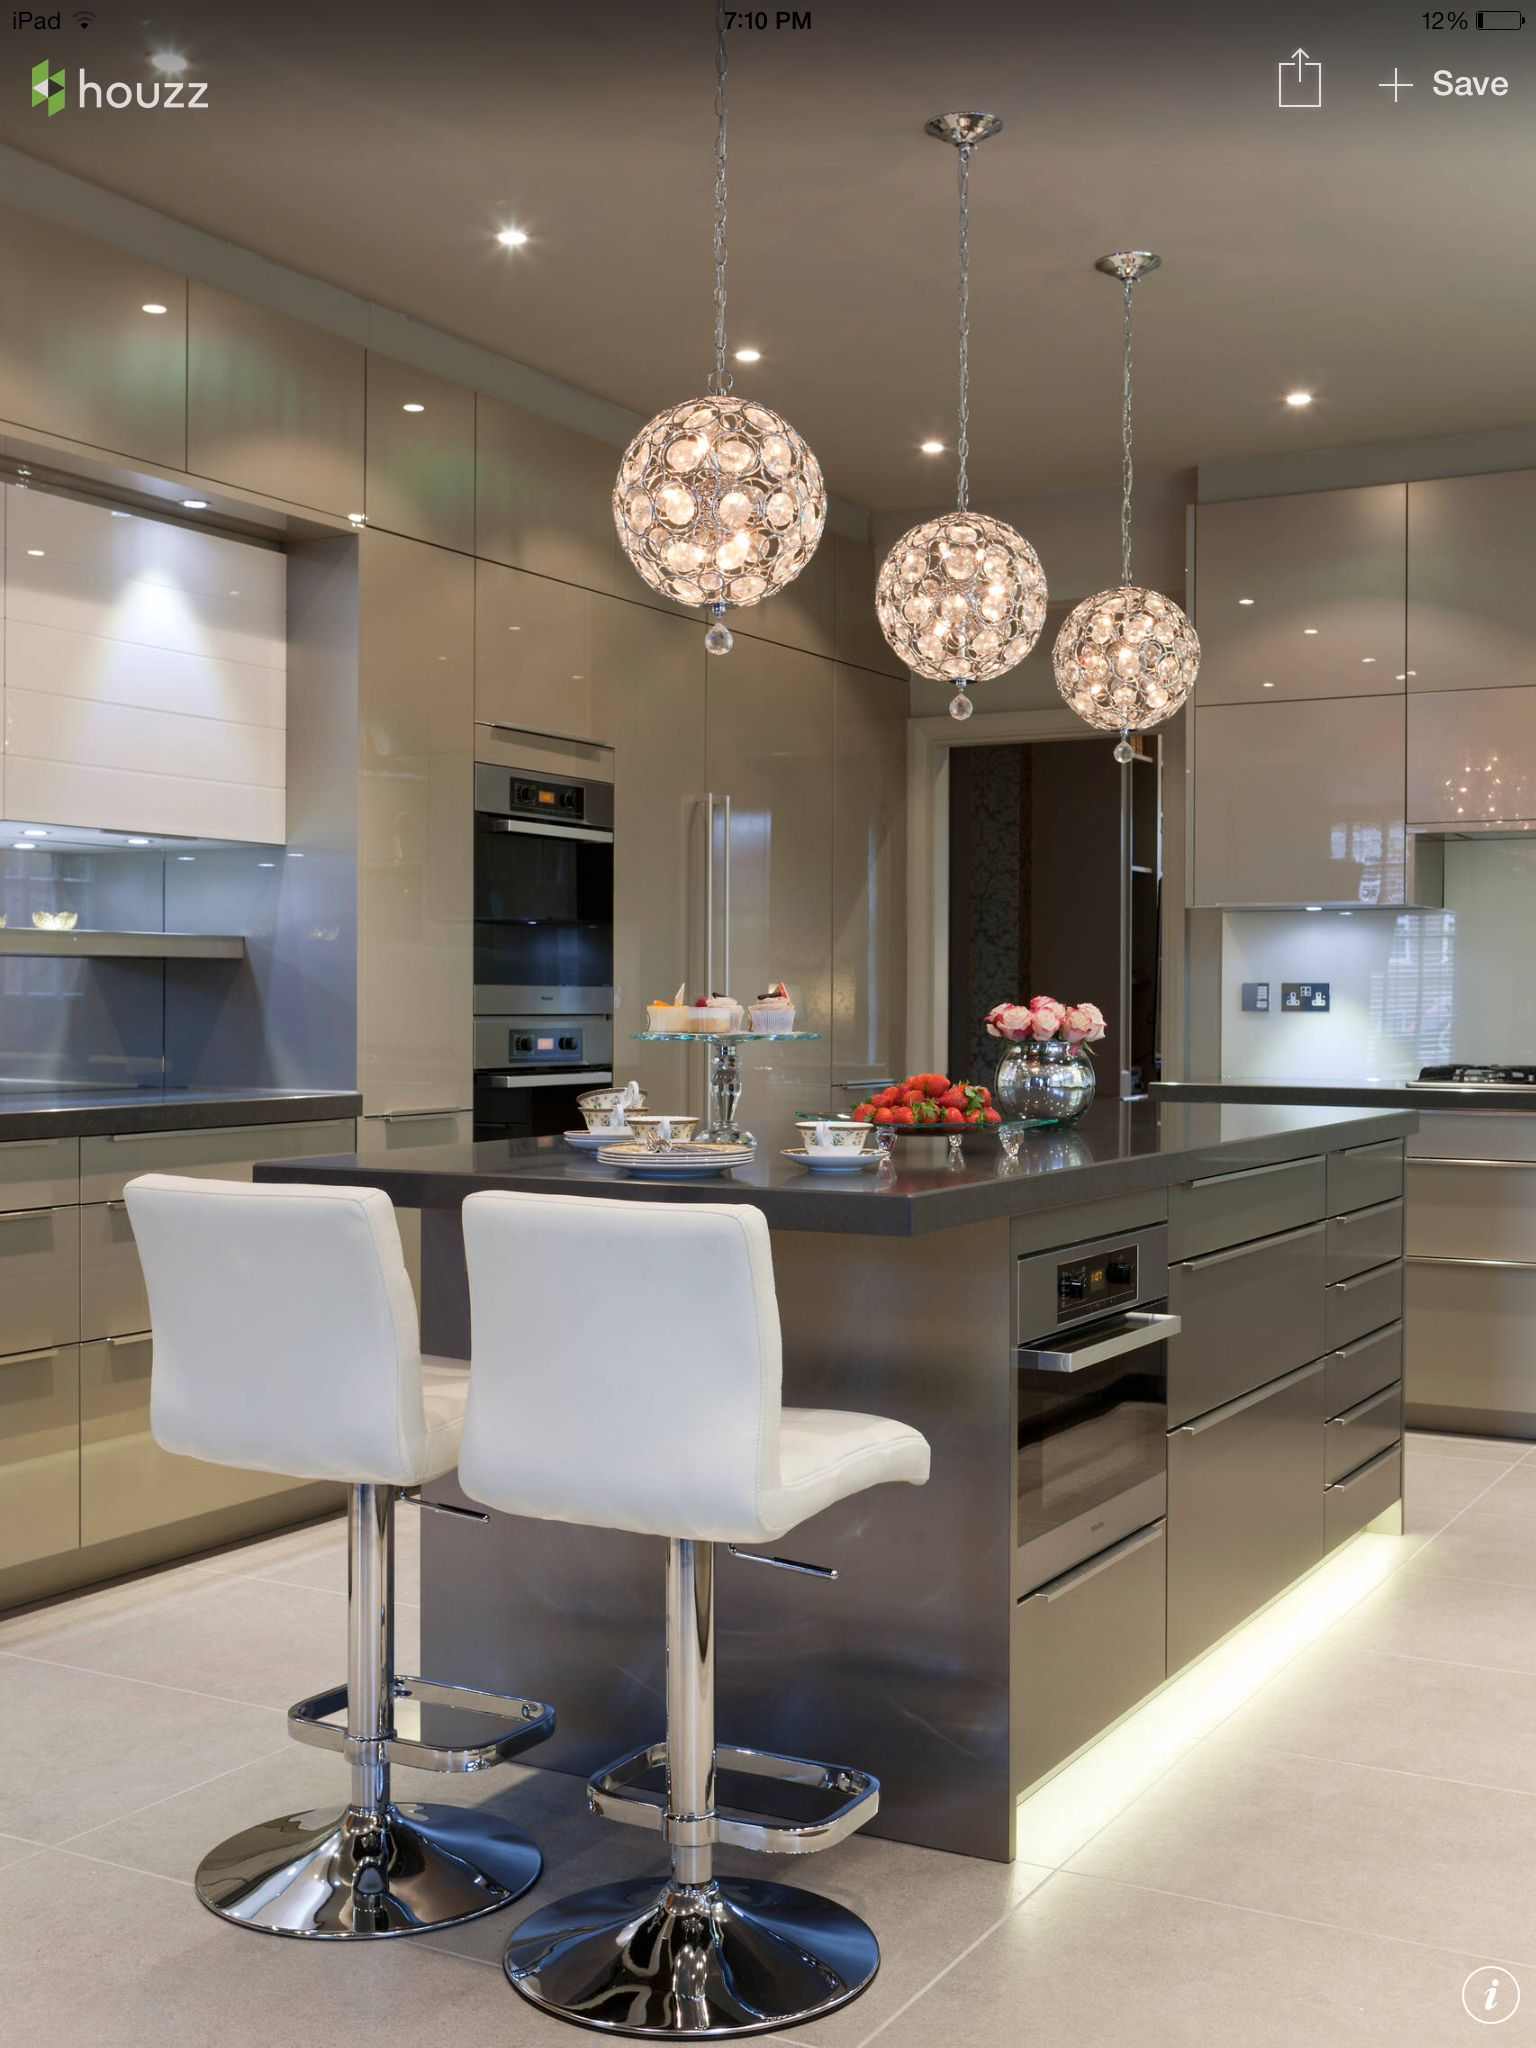 Beautiful kitchen with incredible lightening modernkitchen lightening